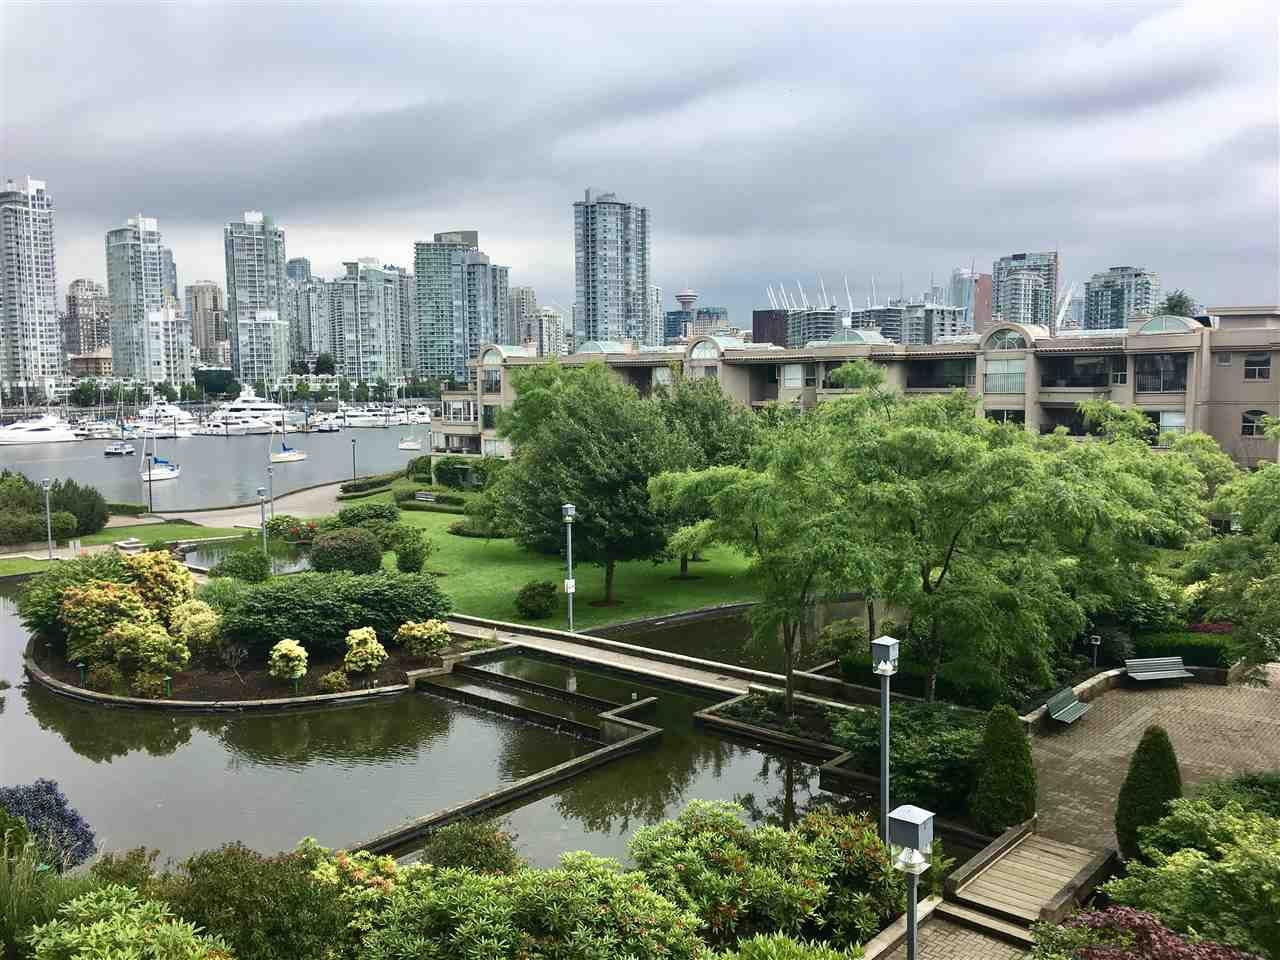 """Main Photo: 402 456 MOBERLY Road in Vancouver: False Creek Condo for sale in """"PACIFIC COVE"""" (Vancouver West)  : MLS®# R2179312"""